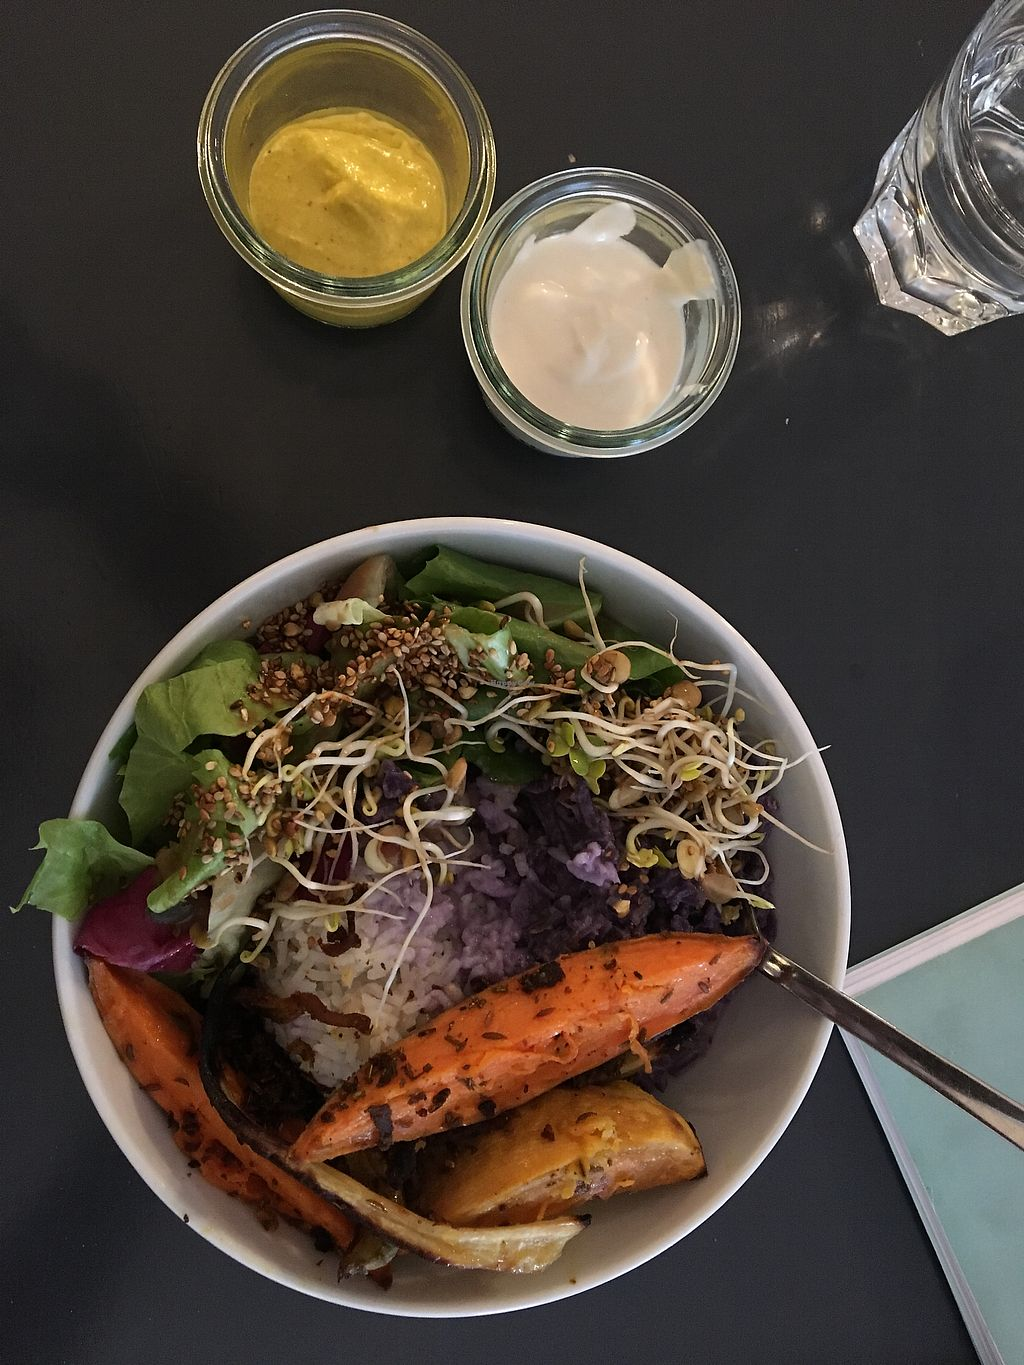 """Photo of Taracafe  by <a href=""""/members/profile/DanielBroadley"""">DanielBroadley</a> <br/>Rice, roasted veg and pickled cabbage  <br/> March 23, 2018  - <a href='/contact/abuse/image/43386/374773'>Report</a>"""